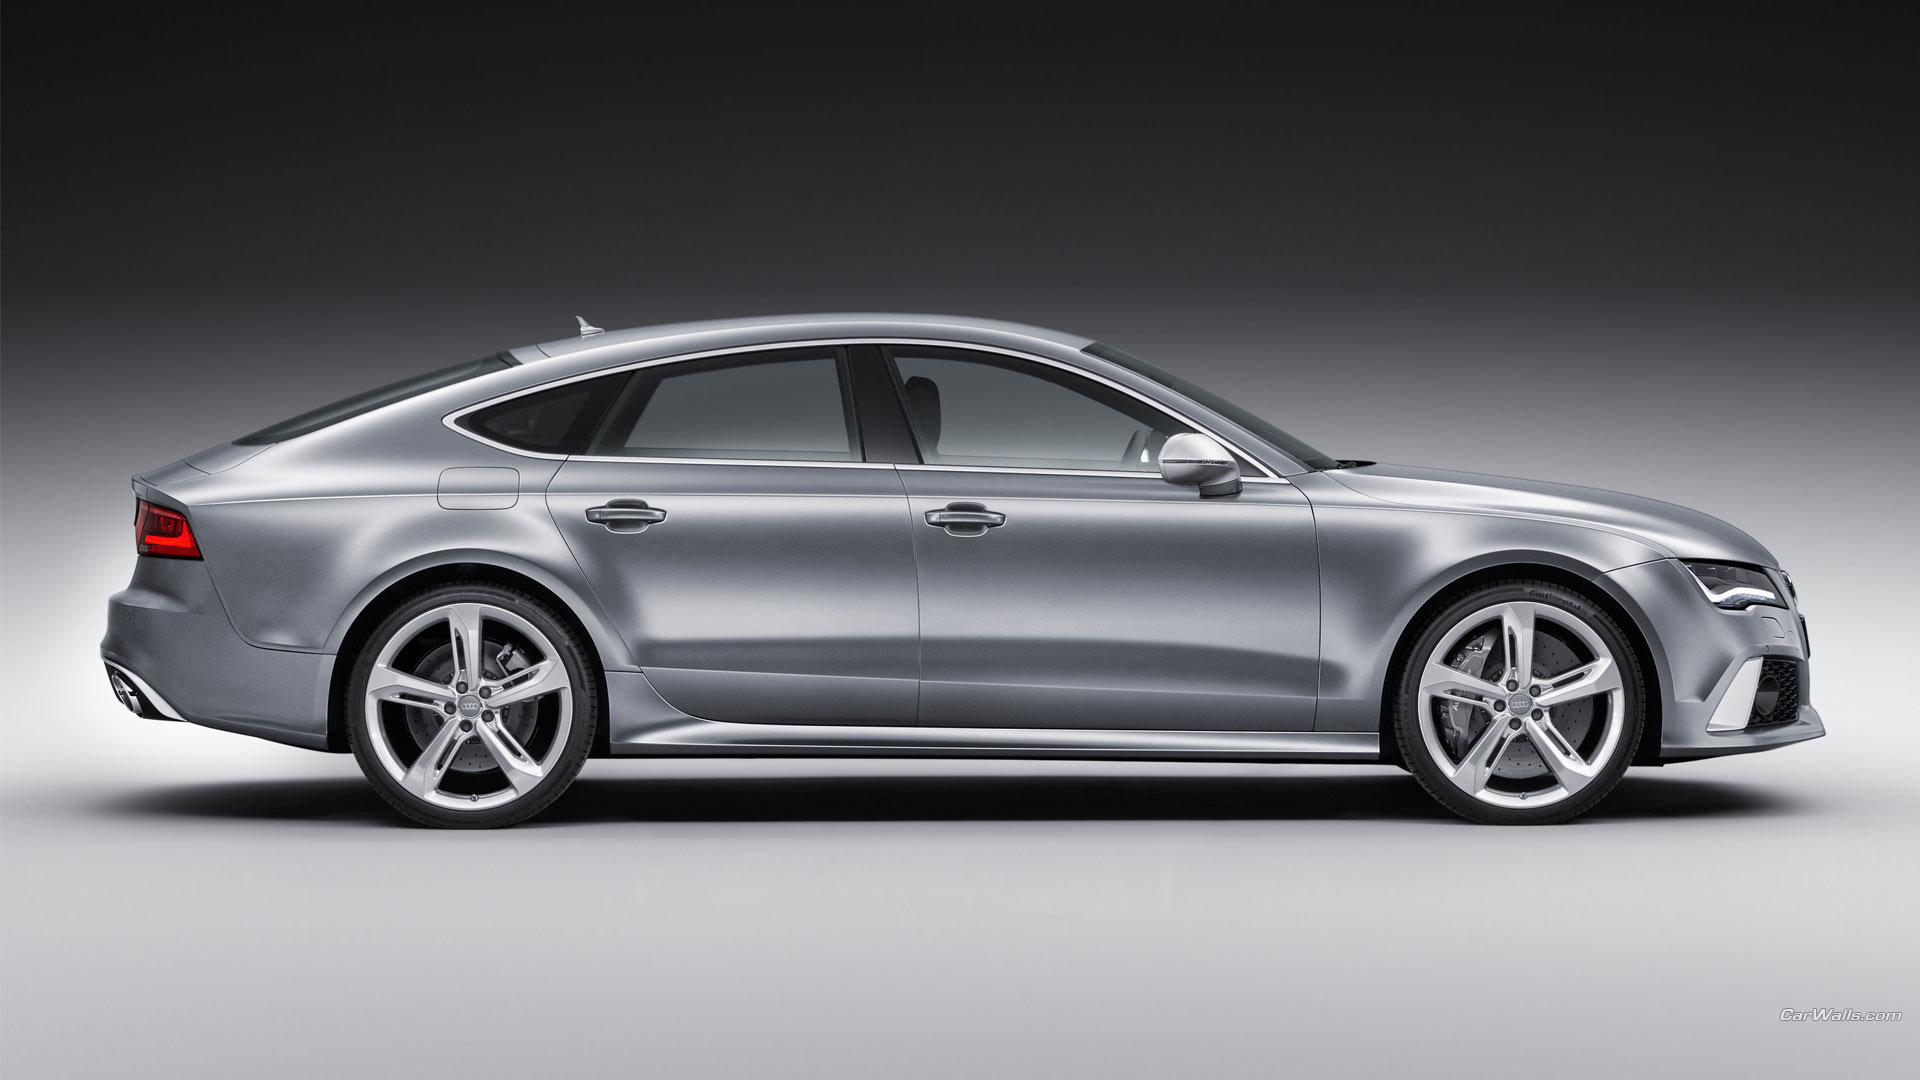 Best Audi Rs7 Wallpaper Id 269277 For High Resolution Full Hd 1080p Pc